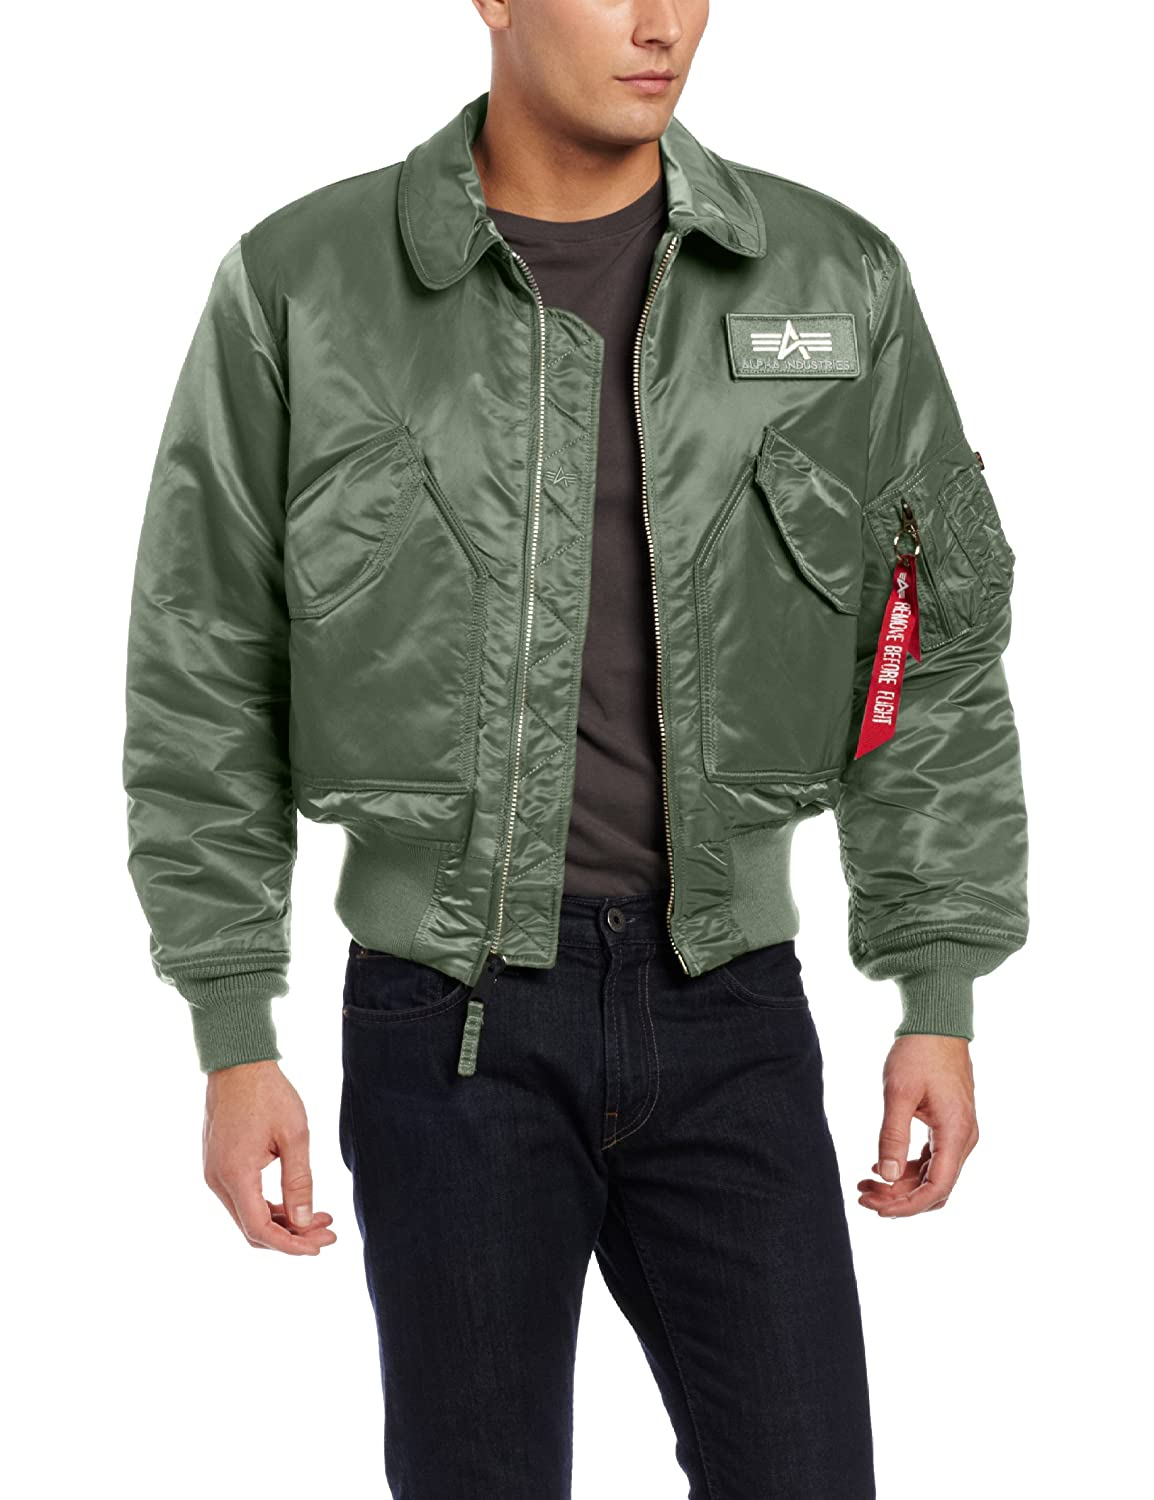 223892f5dc32 Alpha Industries Men s CWU 45 P Flight Jacket  Amazon.co.uk  Clothing